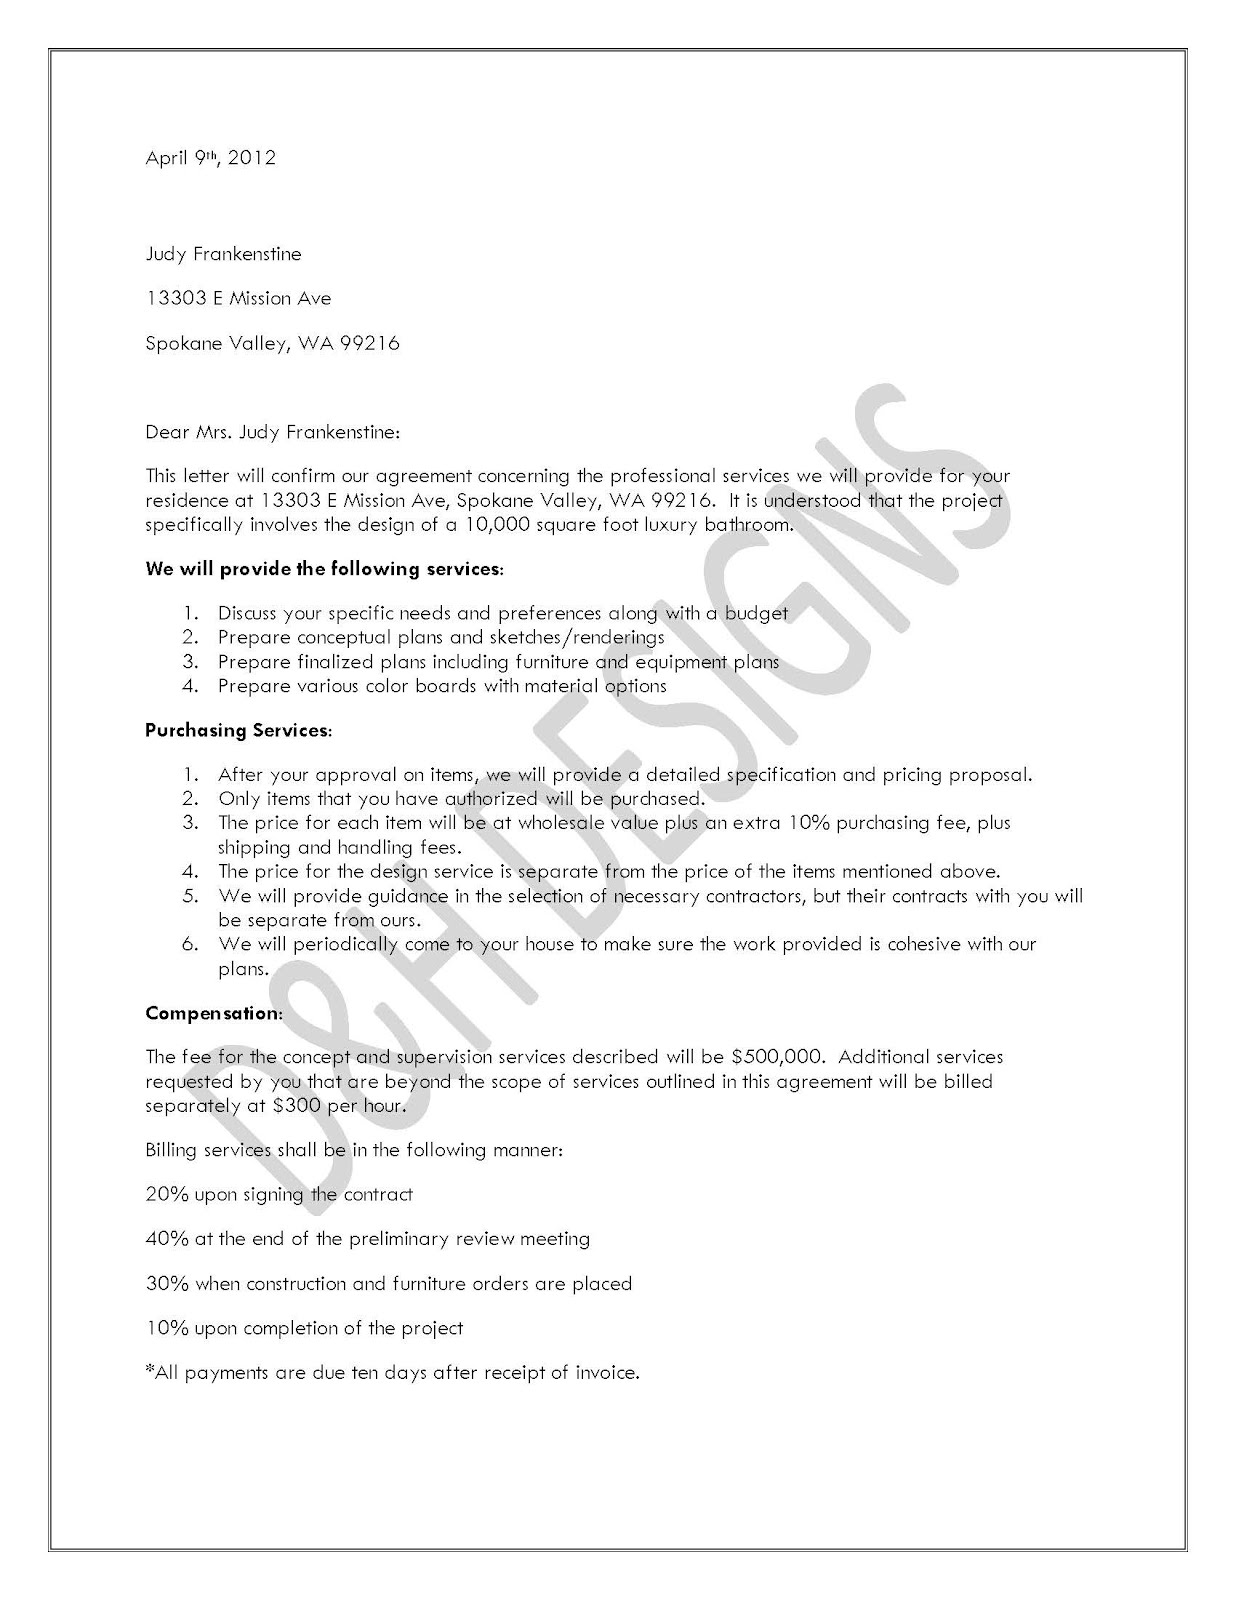 Free printable letter of agreement form generic letter of agreement pronofoot35fo Gallery